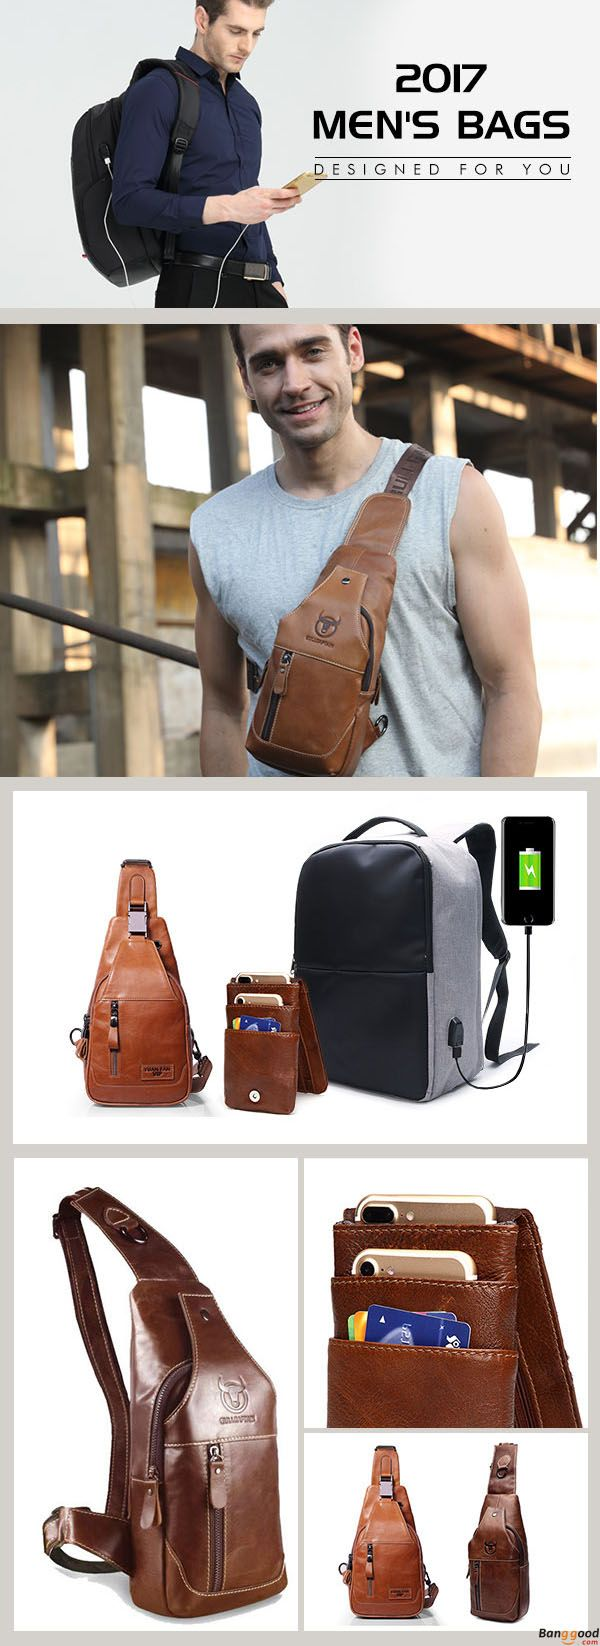 From US$8.99 + Free shipping. Up to 58% Off. All Kinds of Bags for Men, Men Case, Men tote bag, messenger, canvas bag, Crossbody Bag, Chest Bag, Tactic Pouch, Tools Bag, Wallet. Shop Now to Meet the Perfect Item Meant for You.